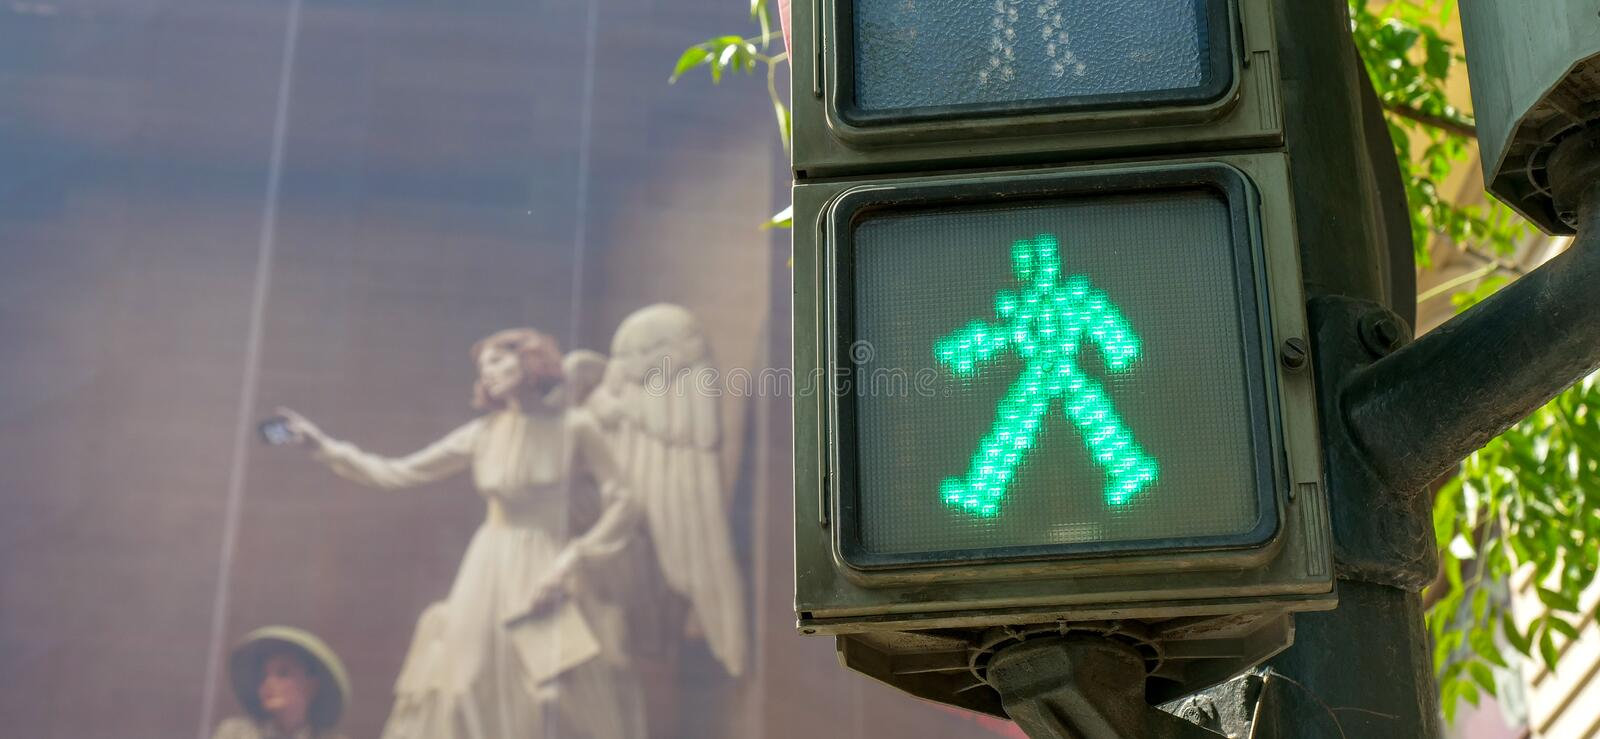 Pedestrian crossing light stock images